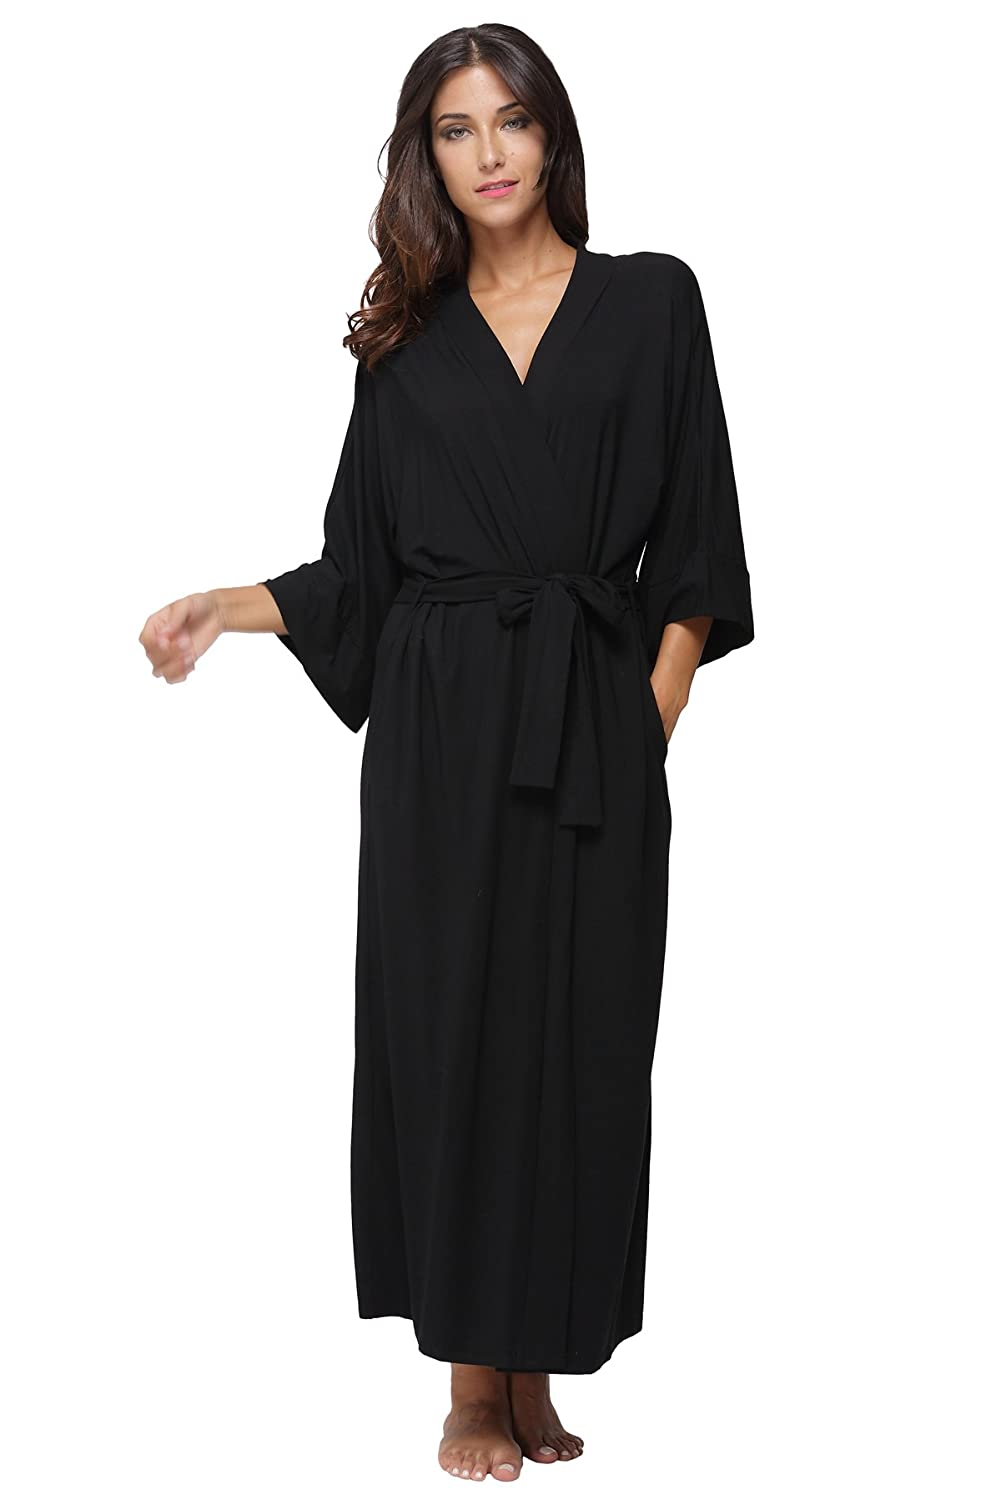 6ca2dbc624 KimonoDeals Women s dept Soft Sleepwear Modal Cotton Wrap Bathrobe Long  Kimono Robe at Amazon Women s Clothing store